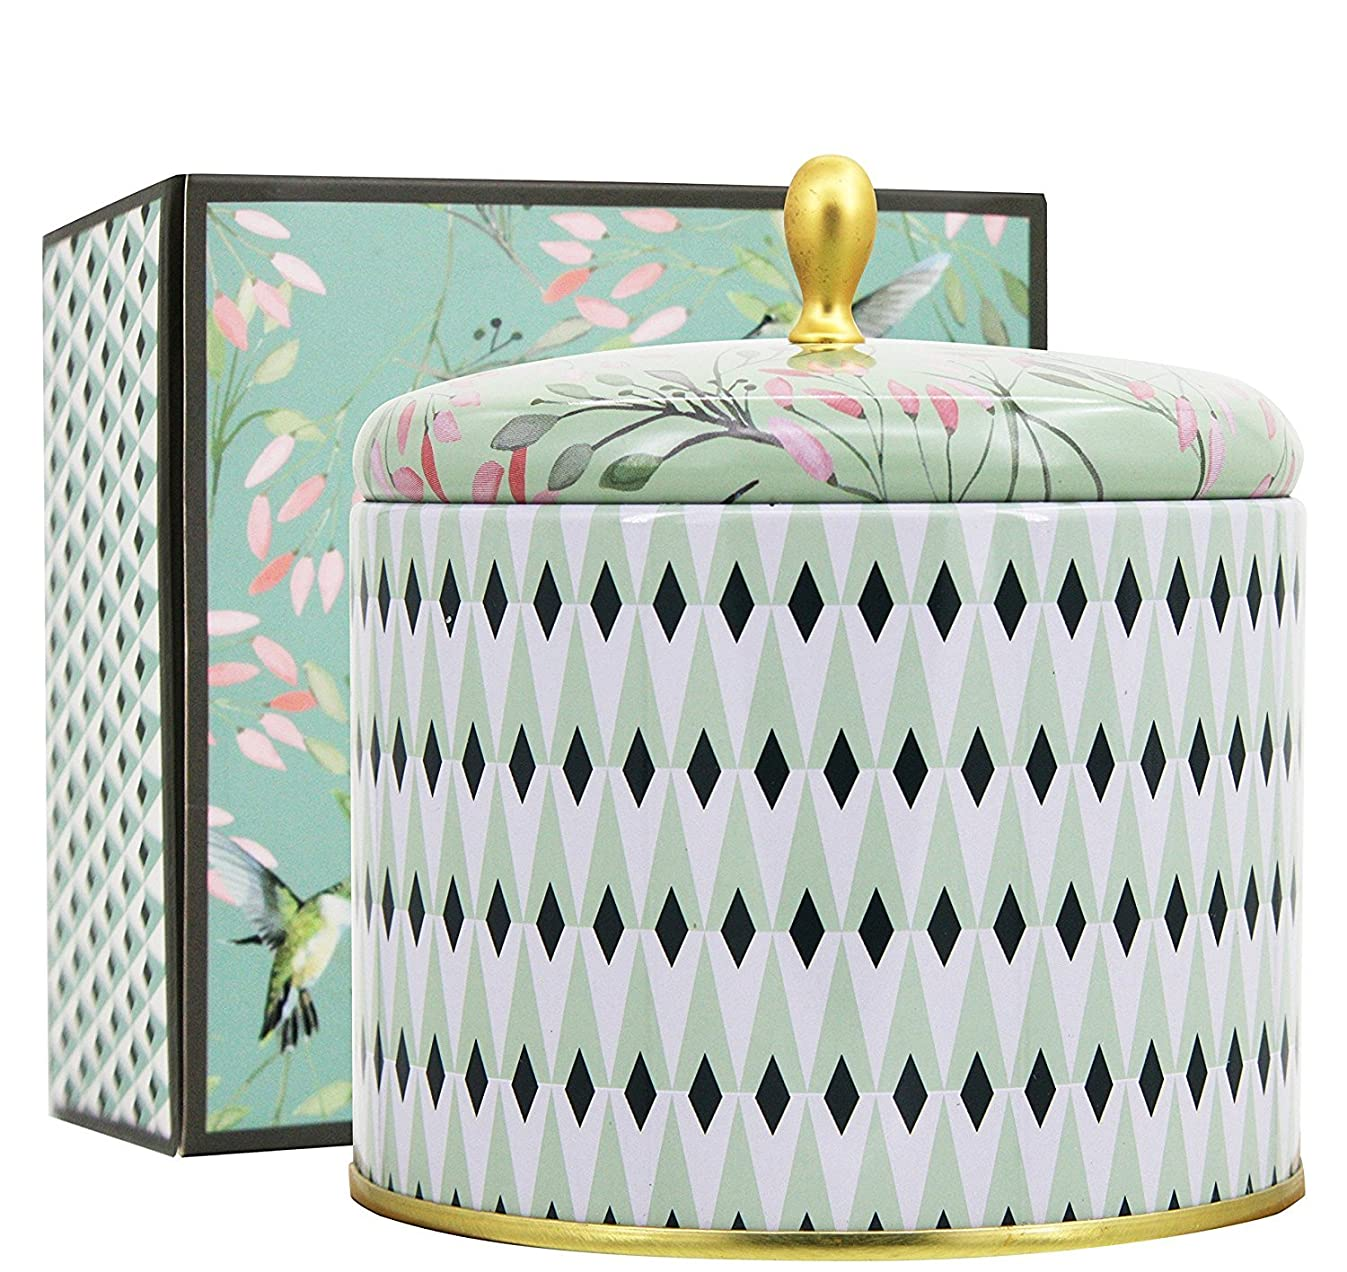 LA JOLIE MUSE Scented Candles 14Oz Aromatherapy Natural Soy Wax Large Tin Candle 2 Wicks, White Tea, Gift Candle